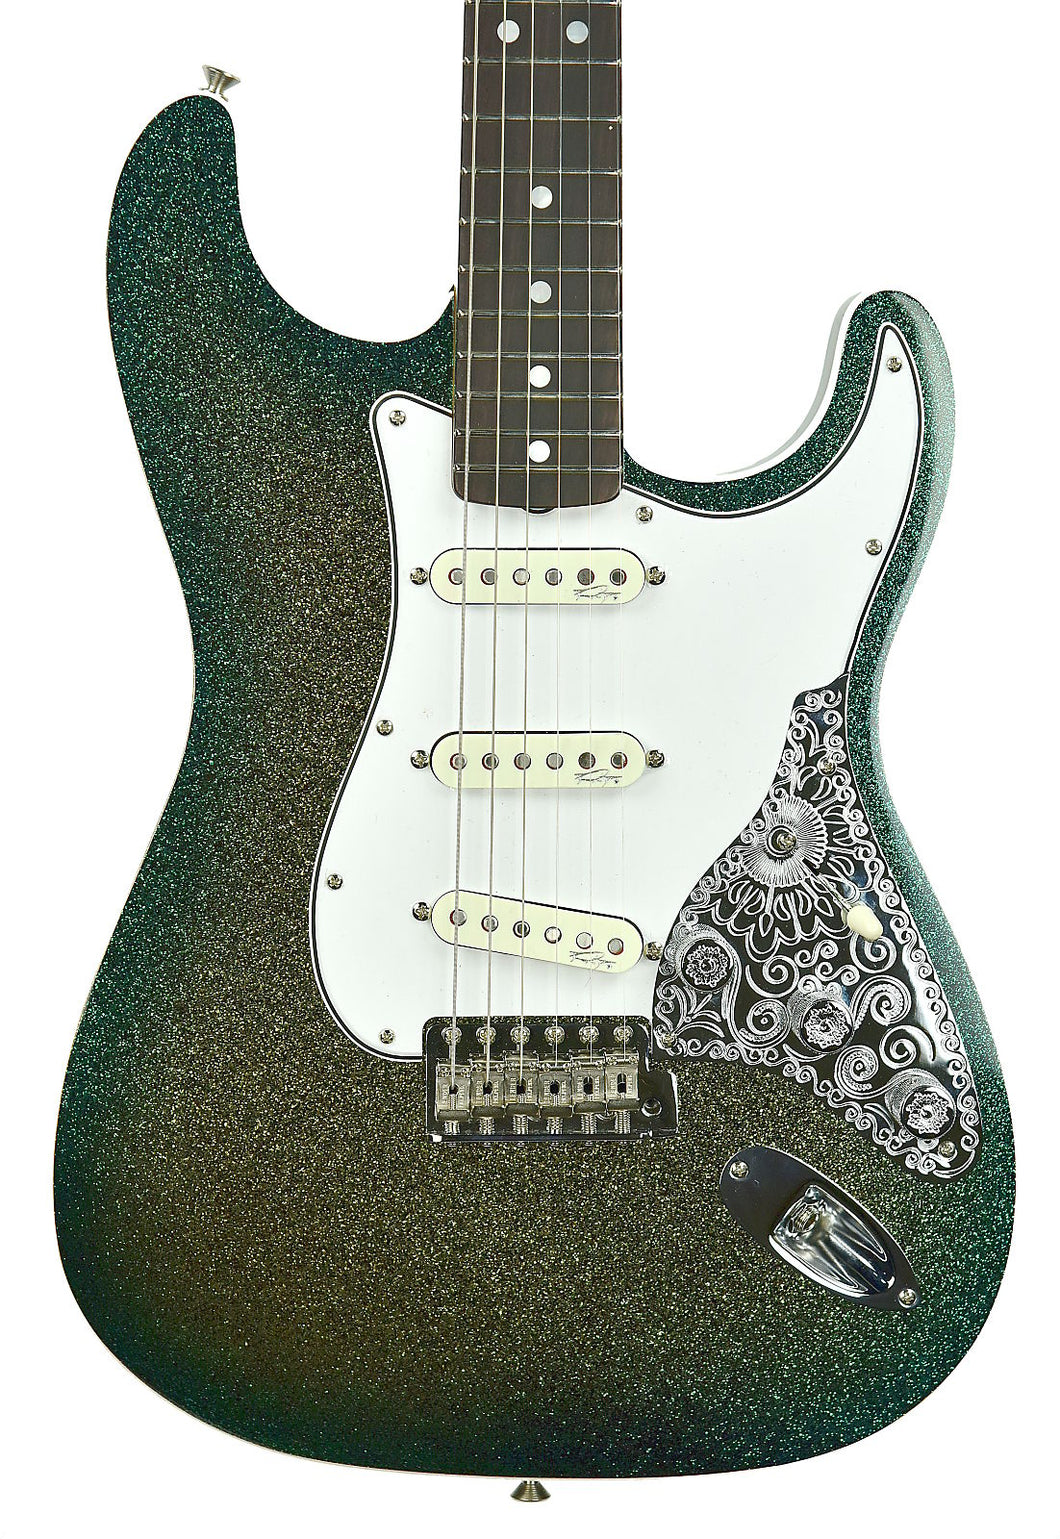 Fender® Custom Shop Founder's Design Strat by Mark Kendrick in Golden Teal Sparkle | Front Small